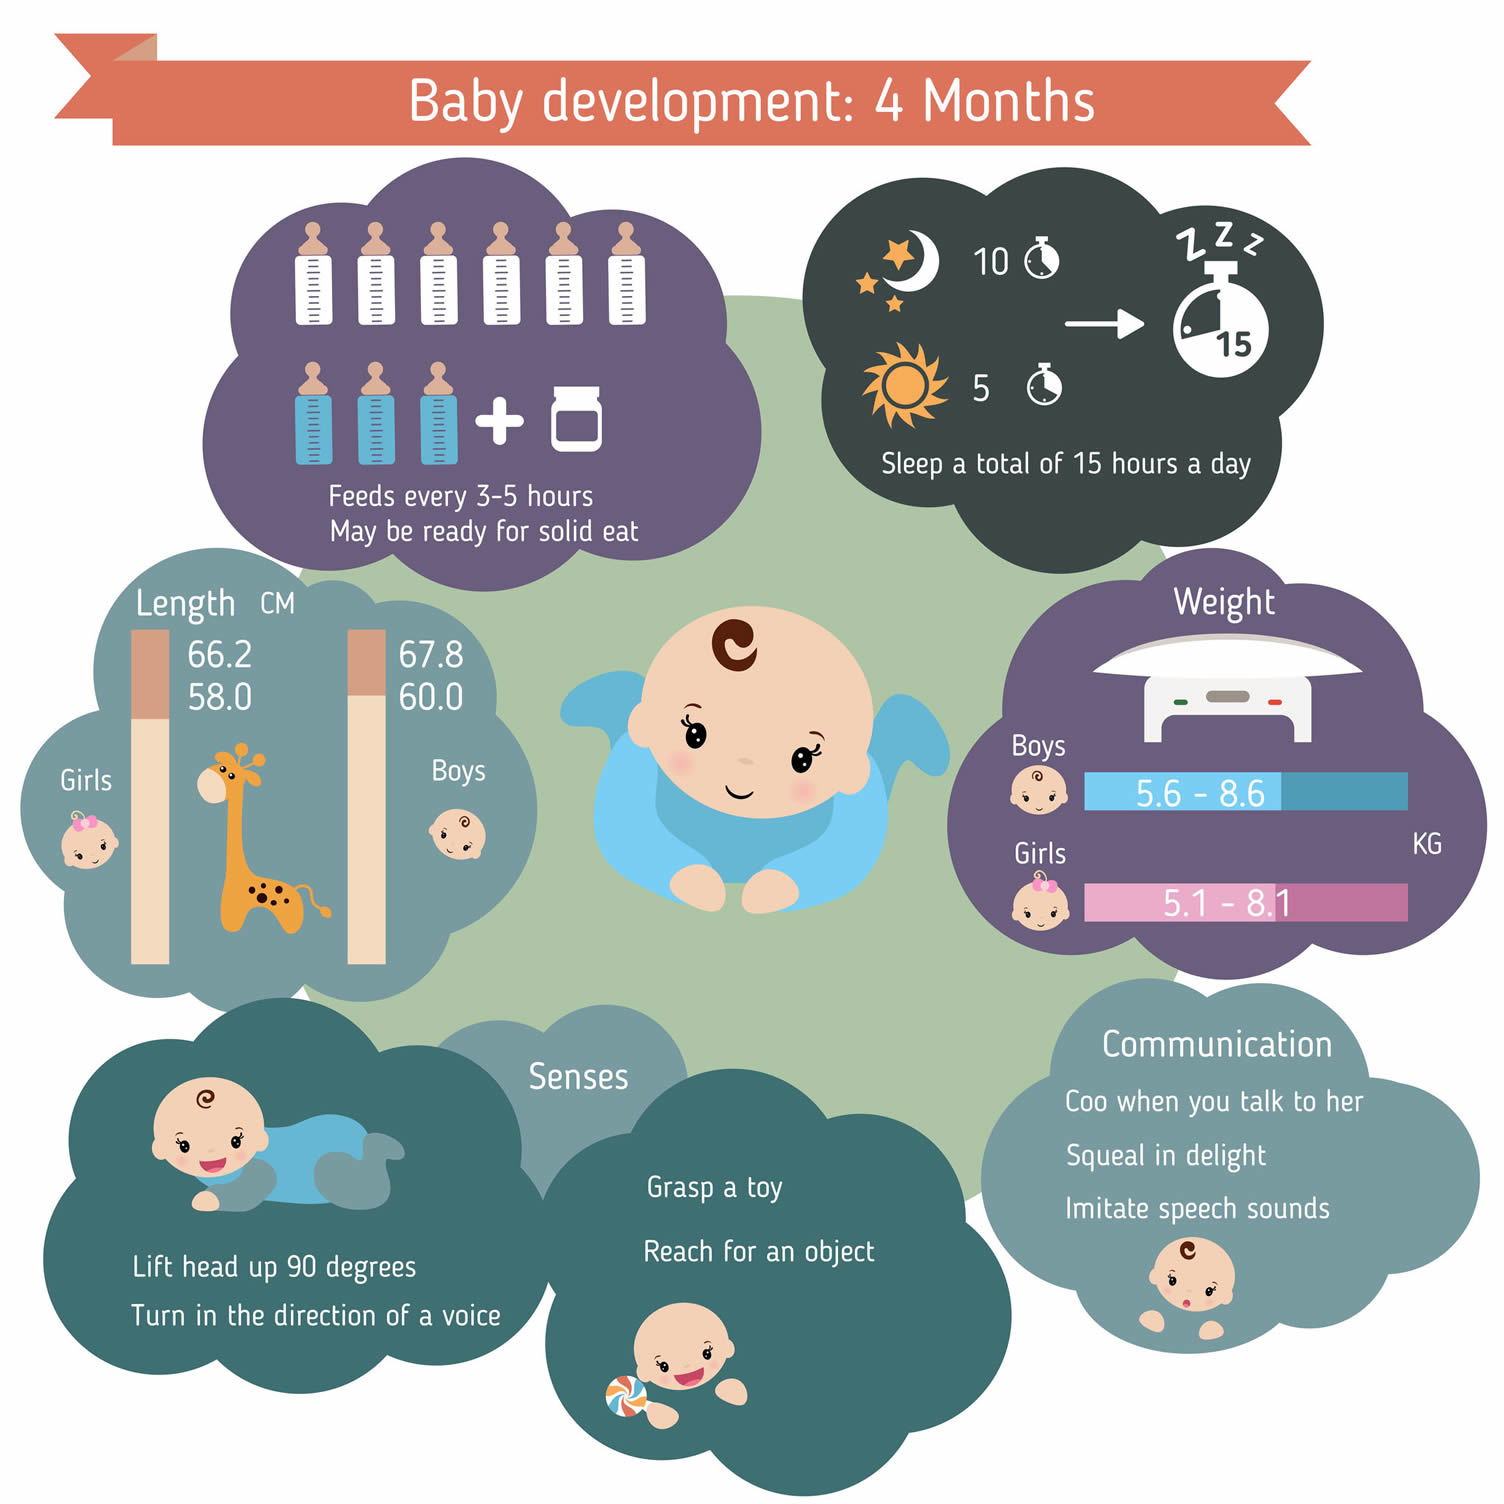 4 month infant care guide